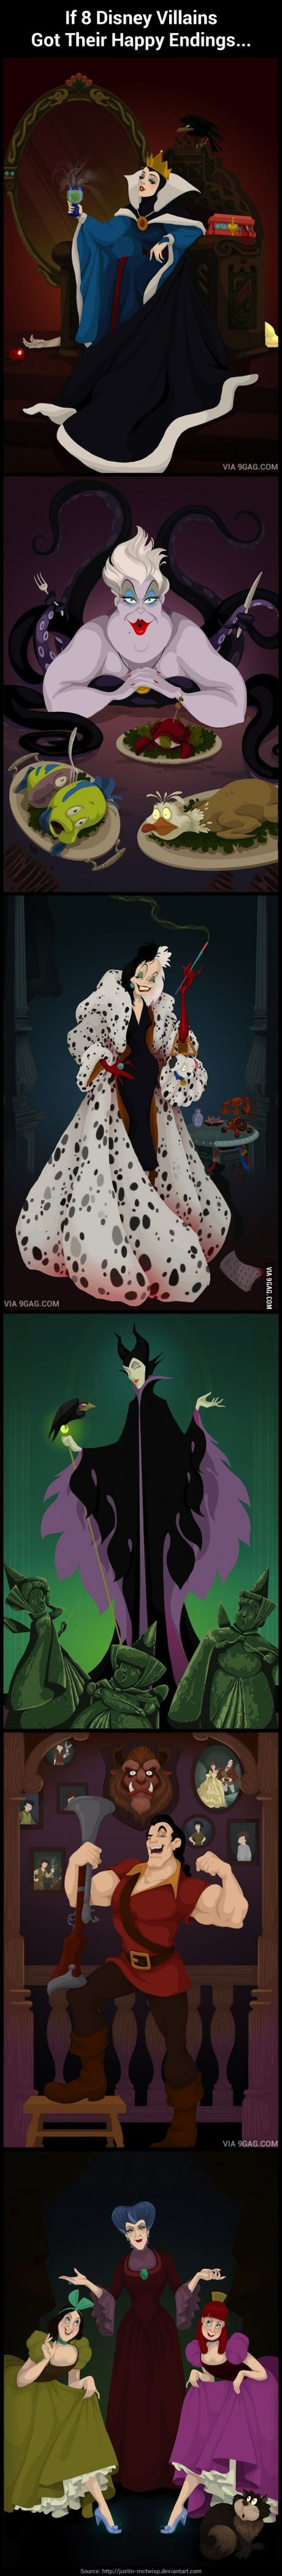 If 8 Disney Villains Got Their Happy Endings-Yay, Maleficent!